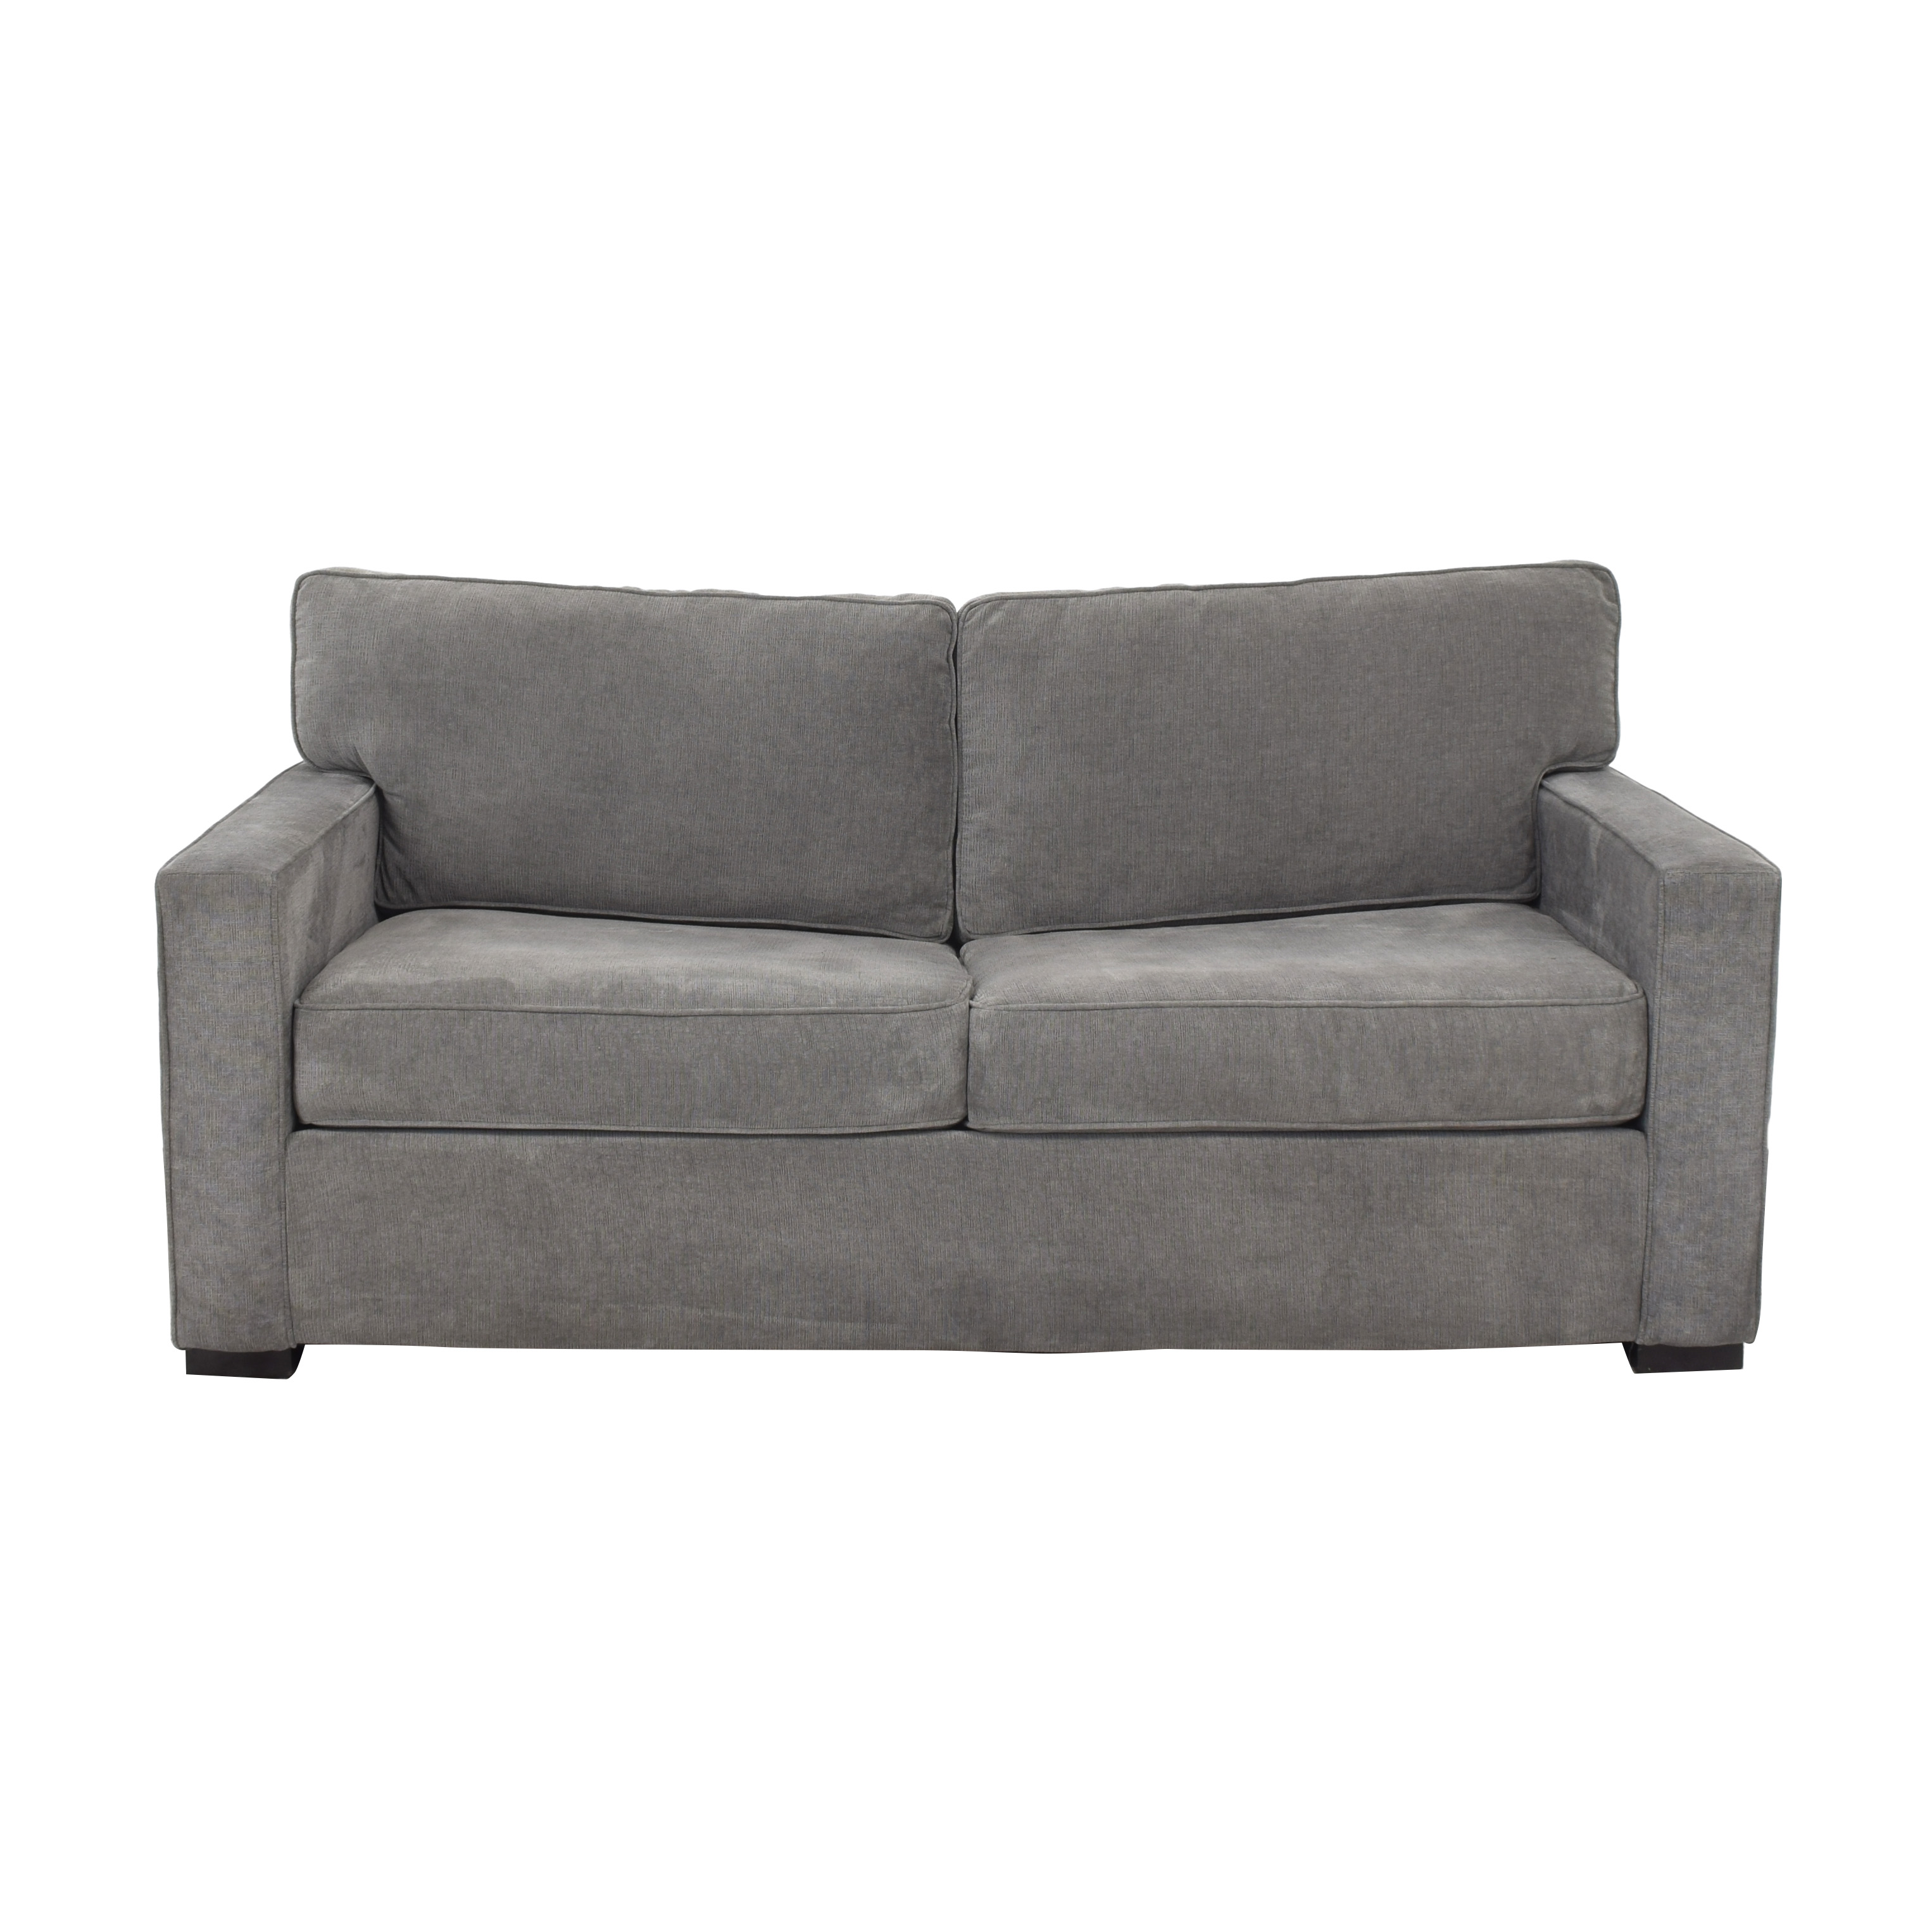 Macy's Radley Full Sleeper Sofa Bed Macy's